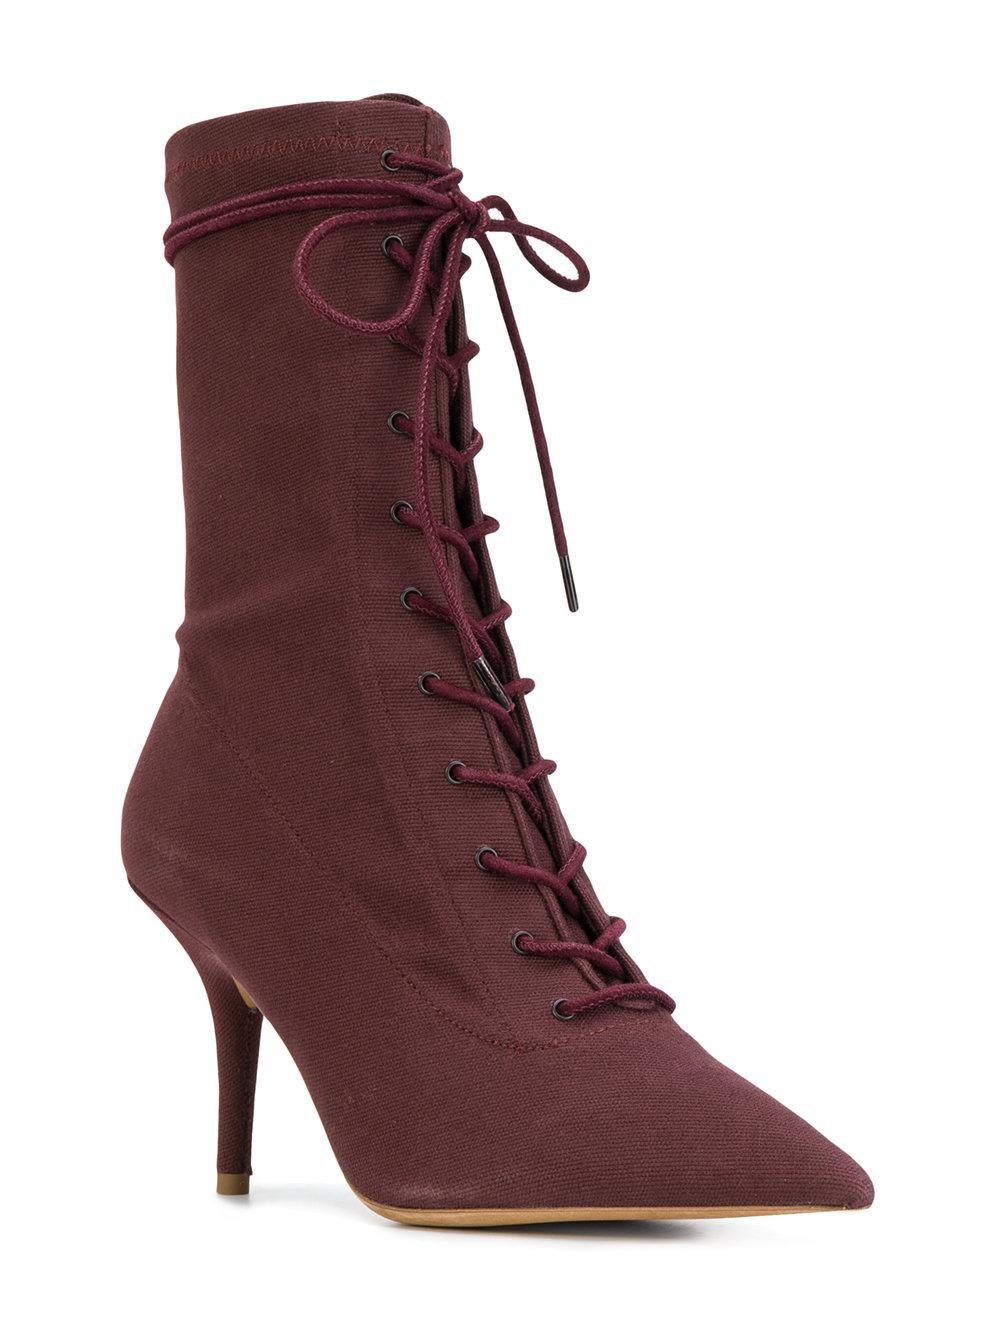 Yeezy Leather Lace-up Ankle Boots in Brown